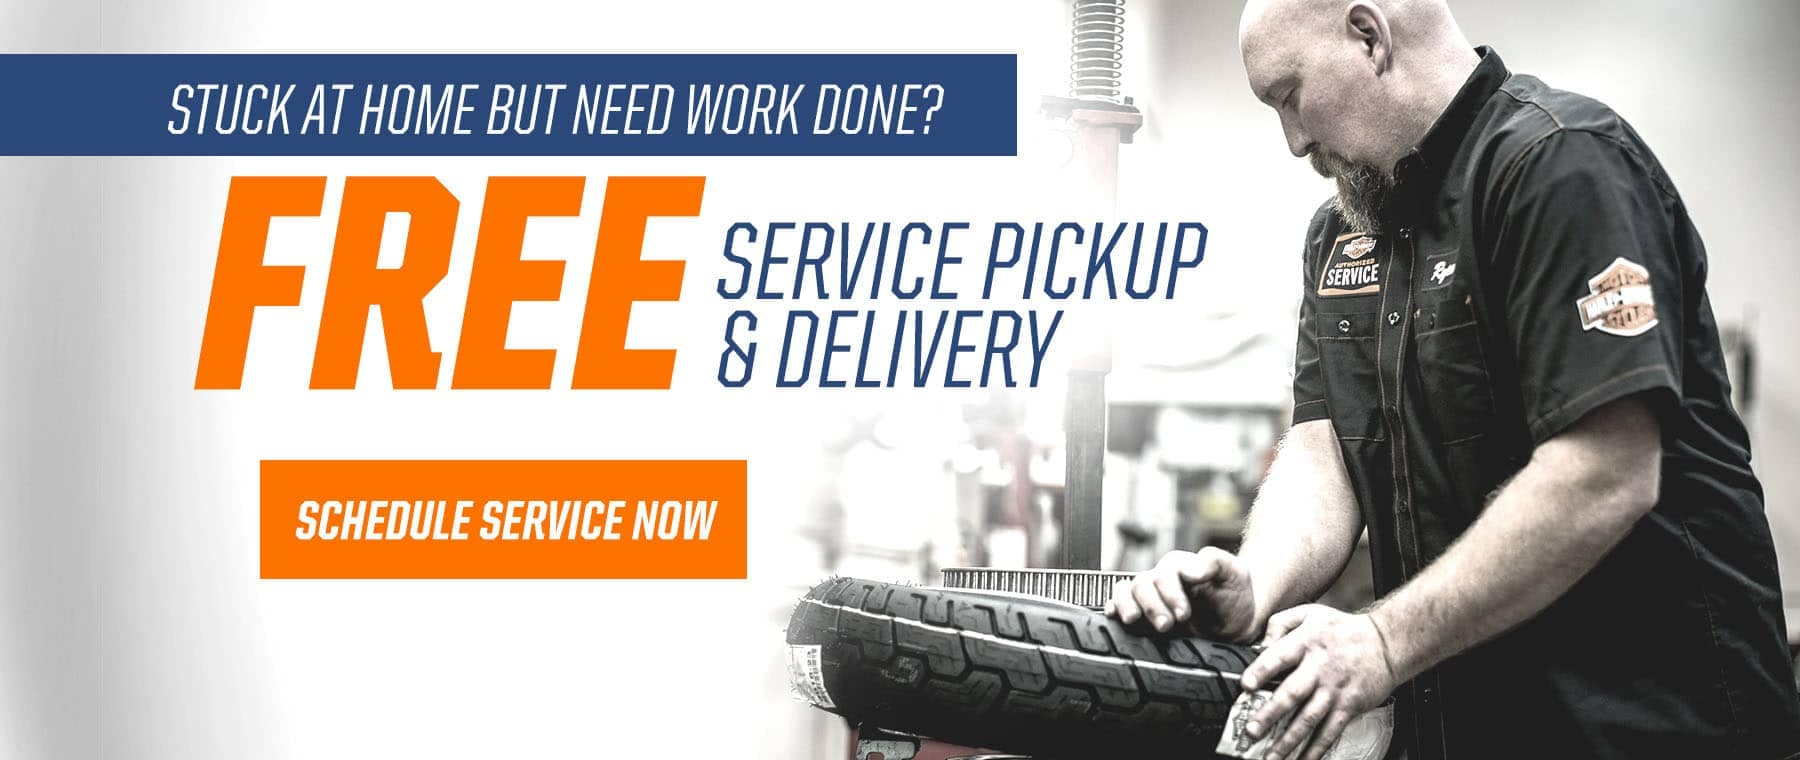 Service pick up & delivery banner